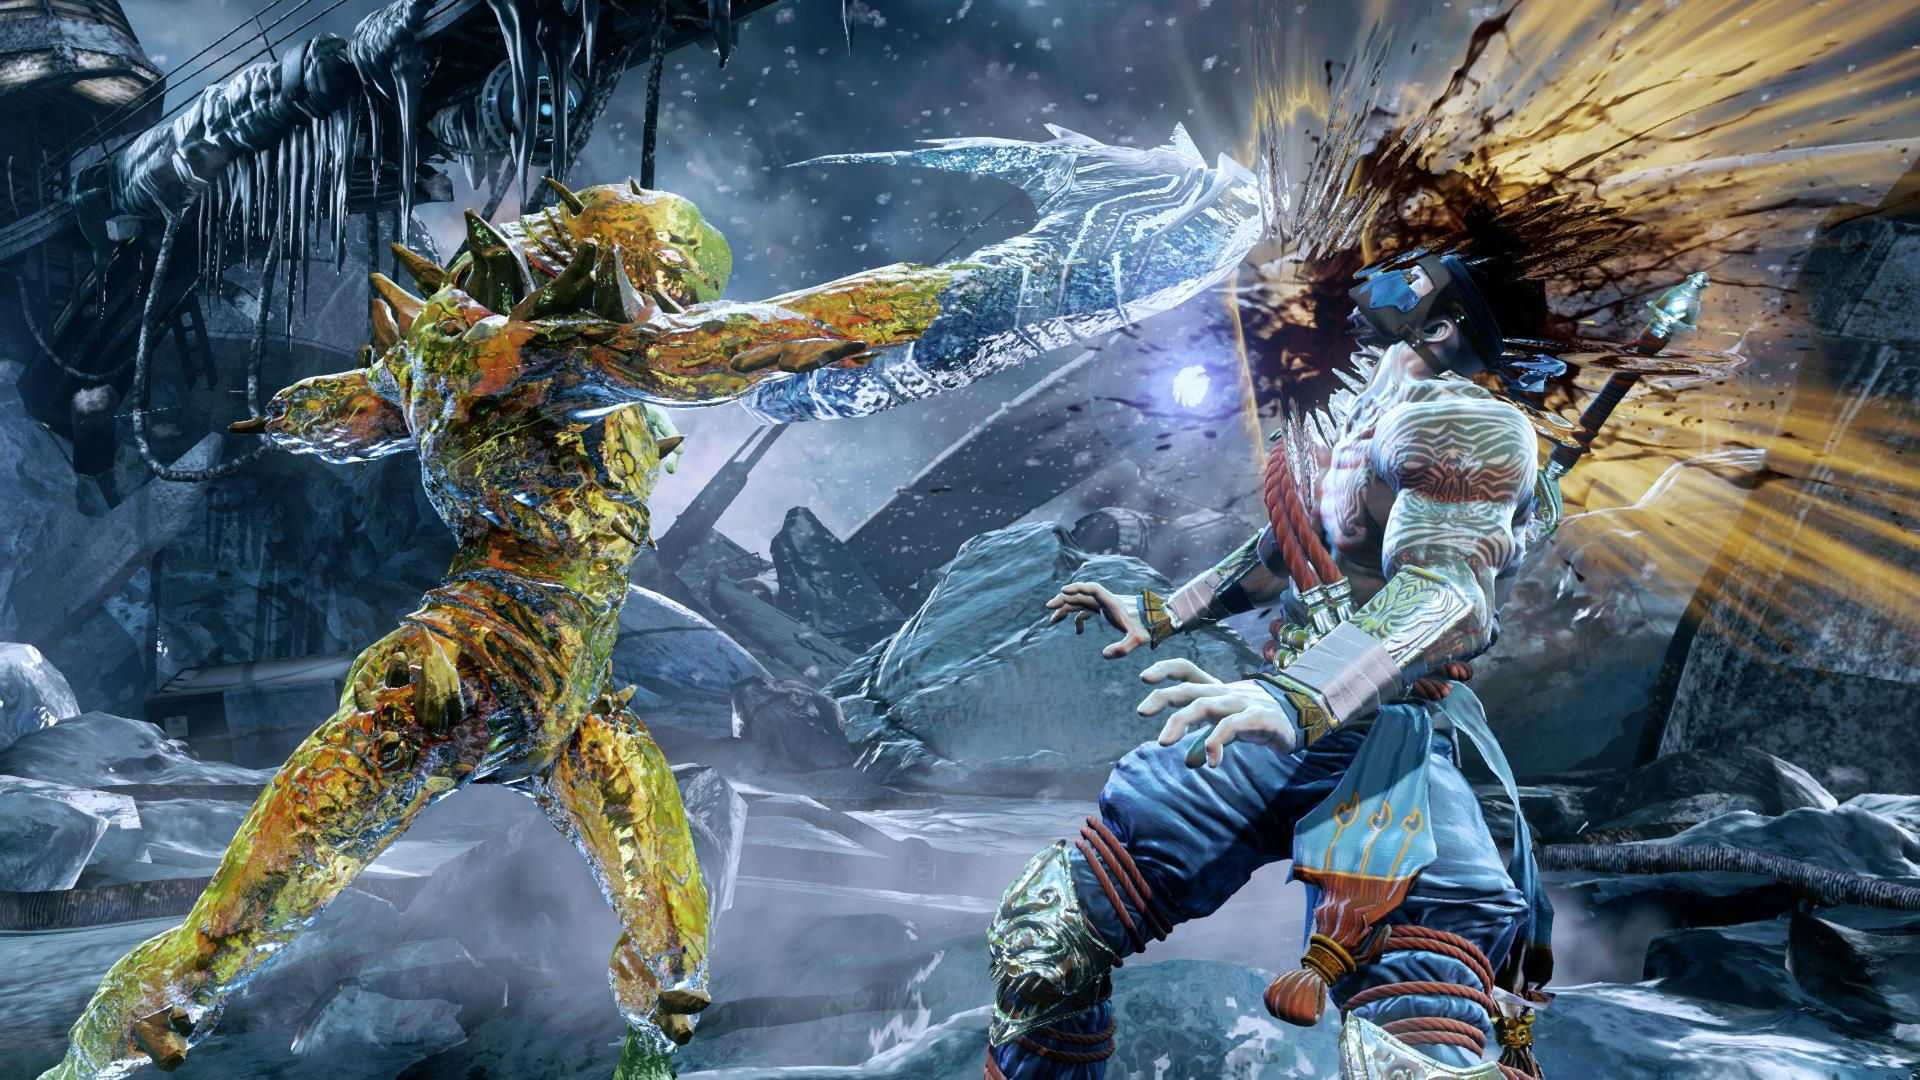 Stylish Glacius in Killer Instinct